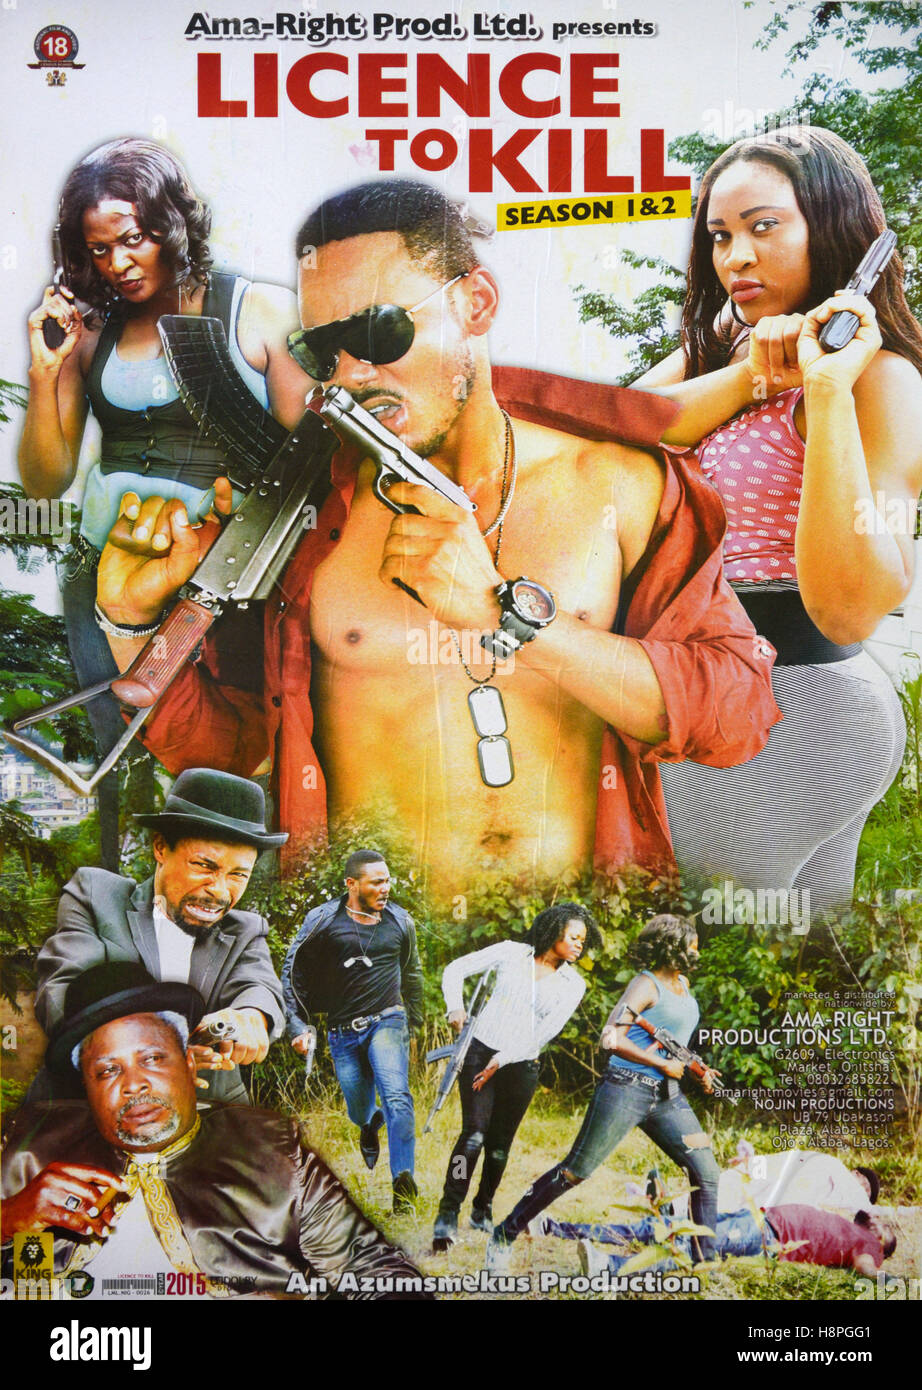 Nigerian Nollywood Film or Movie Poster for a Spoof James Bond Style Movie  'Licence to Kill' - Stock Image